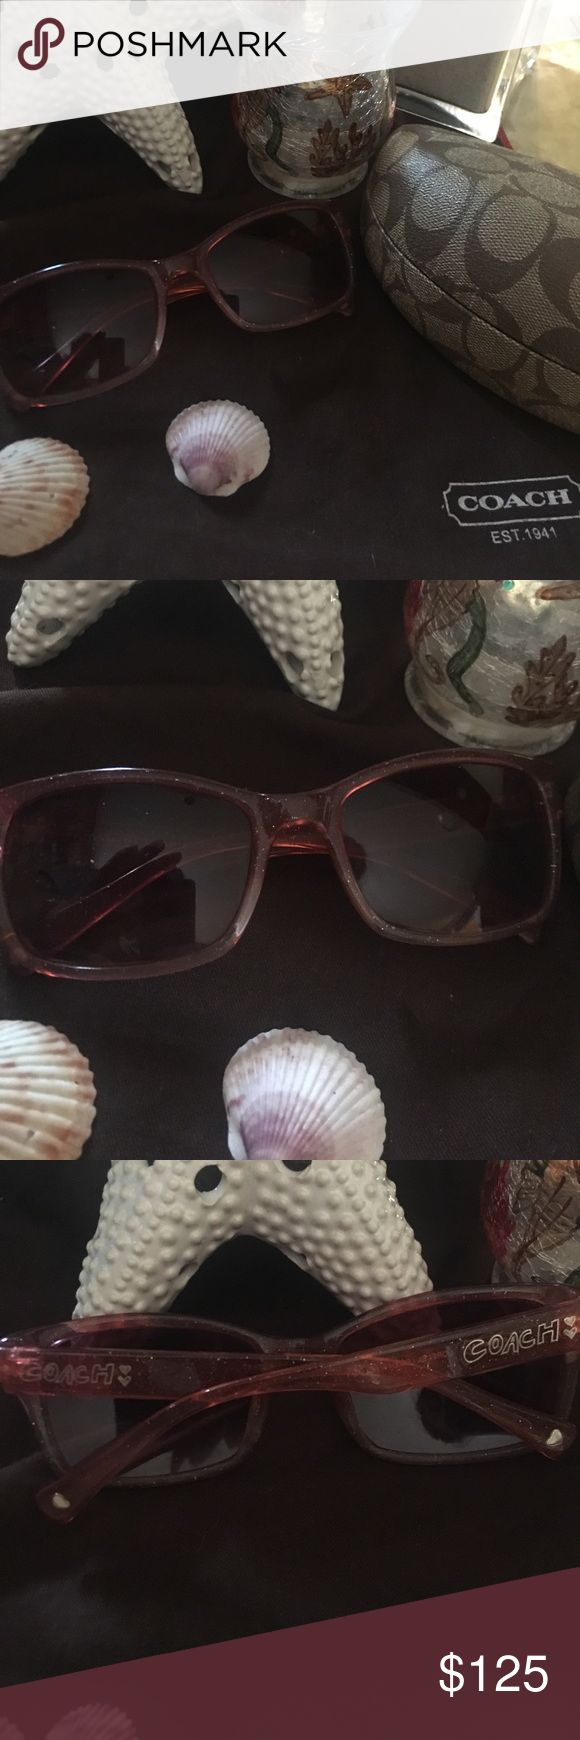 Coach Poppy Pink Sunglasses / sunnies Coach Poppy sunnies.   Gorgeous pink.  Arms have coach spelled out and little hearts on the bottom of the arms. ♥️❤️.  Price is firm.   I will be happy to keep these❤️.  Comes with hardshell case and cleaning cloth. Coach Accessories Sunglasses